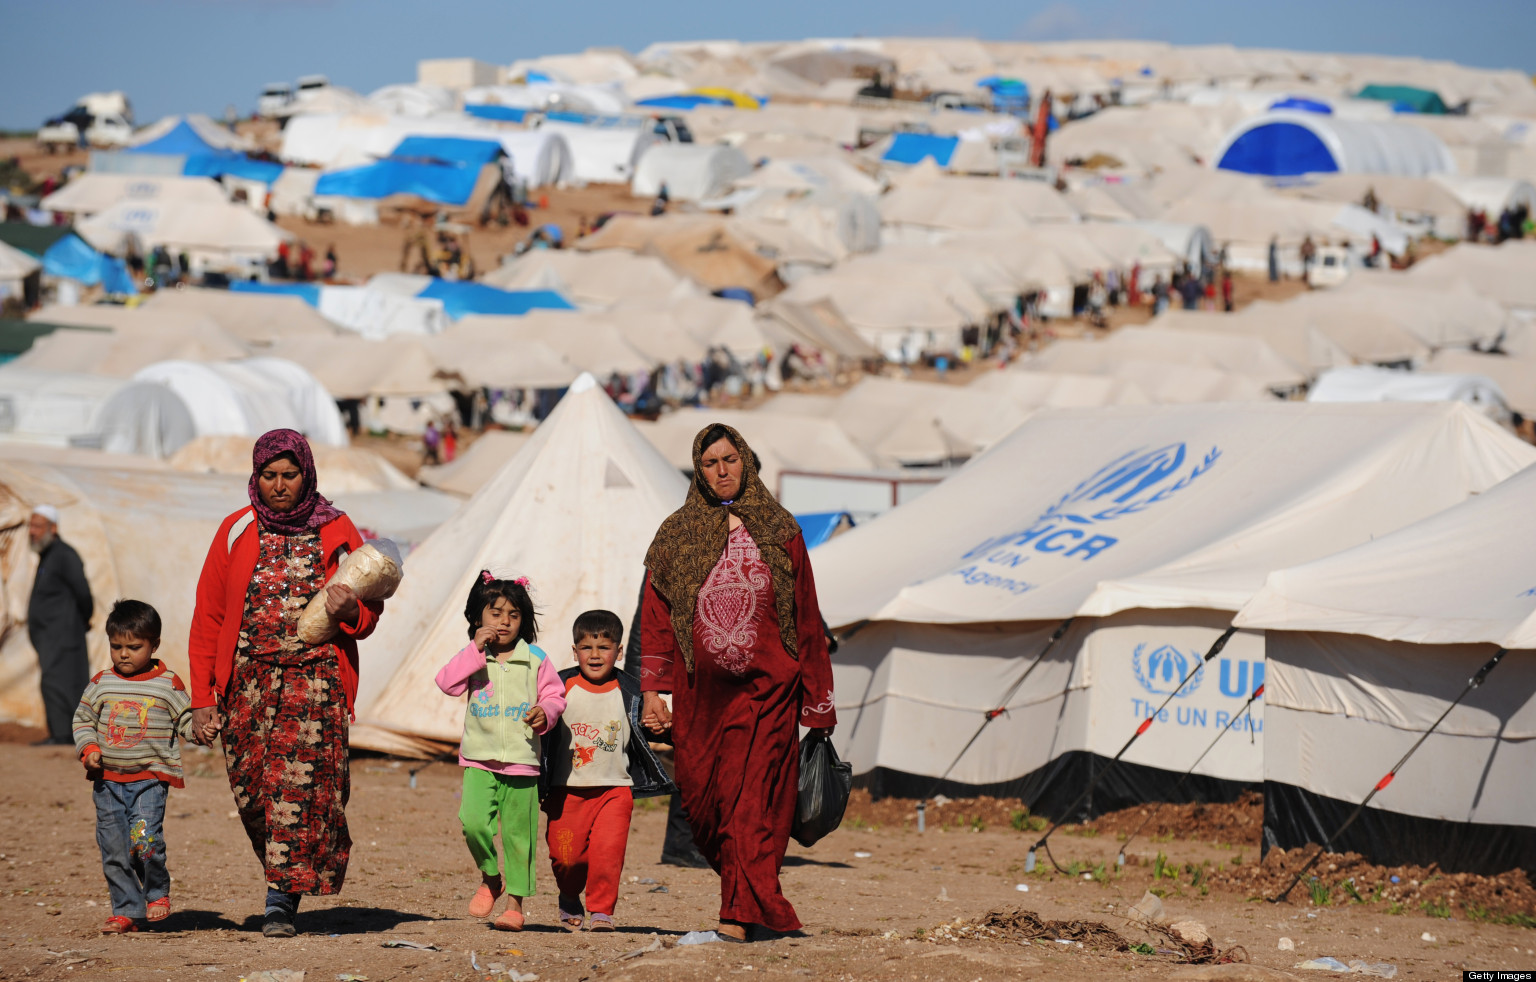 Syrian internally displaced people walk in the Atme camp, along the Turkish border in the northwestern Syrian province of Idlib, on March 19, 2013. Credit: The Huffington Post/AFP PHOTO/BULENT KILIC (Photo credit should read BULENT KILIC/AFP/Getty Images)